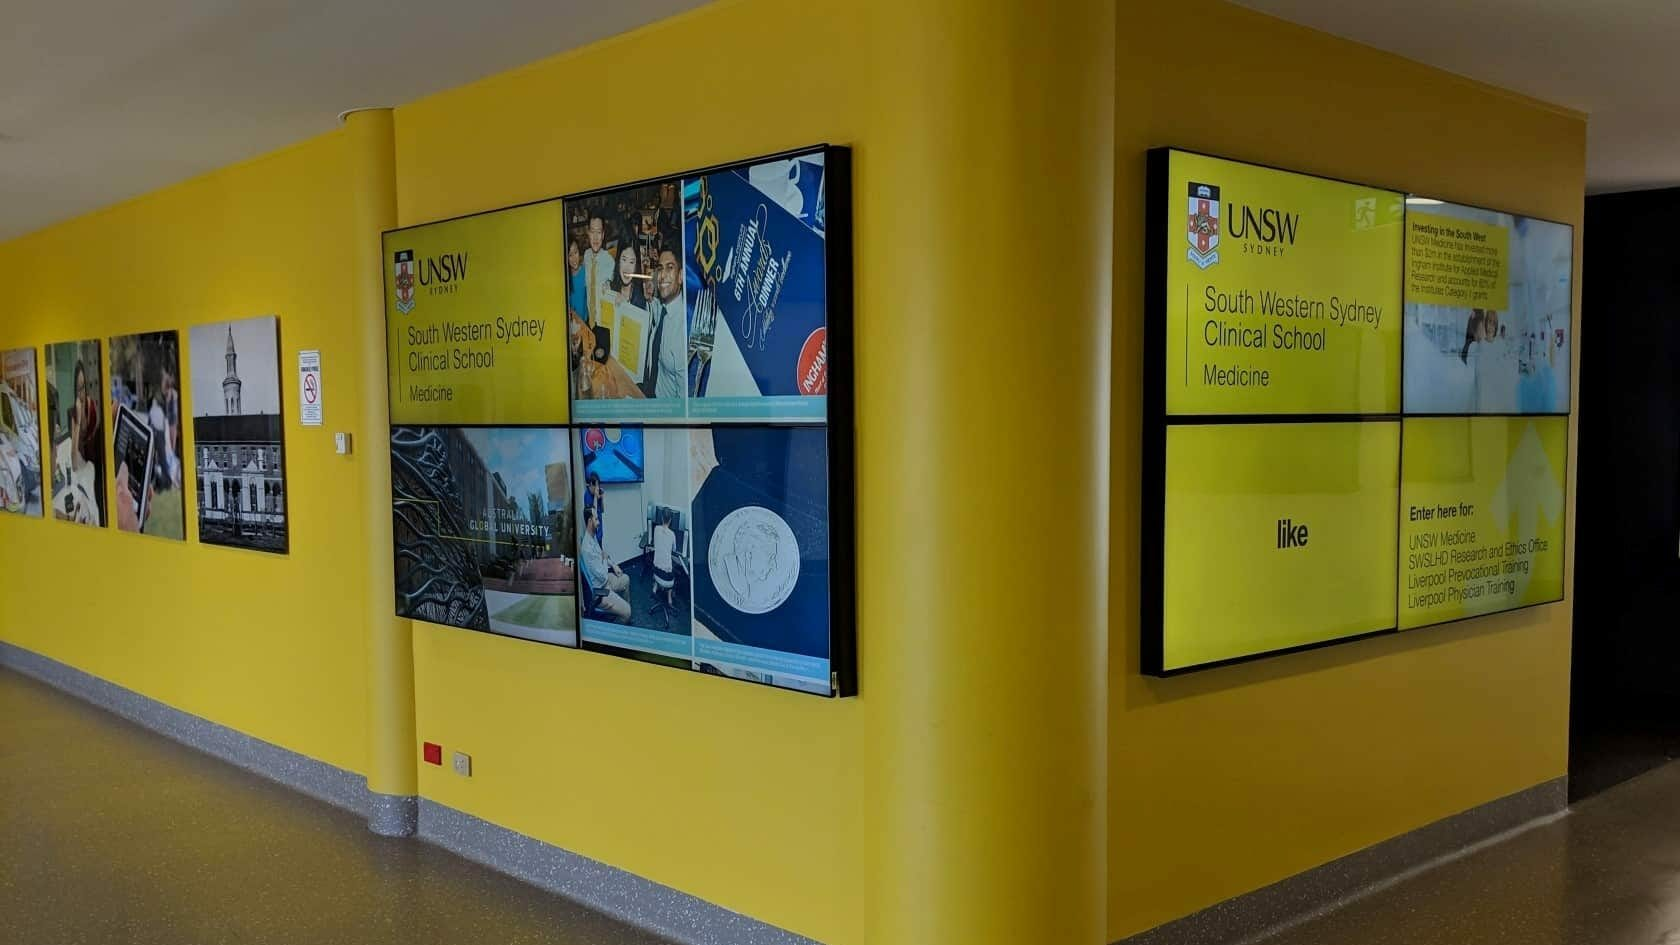 Advertise Me - Video Wall UNSW Liverpool Hospital